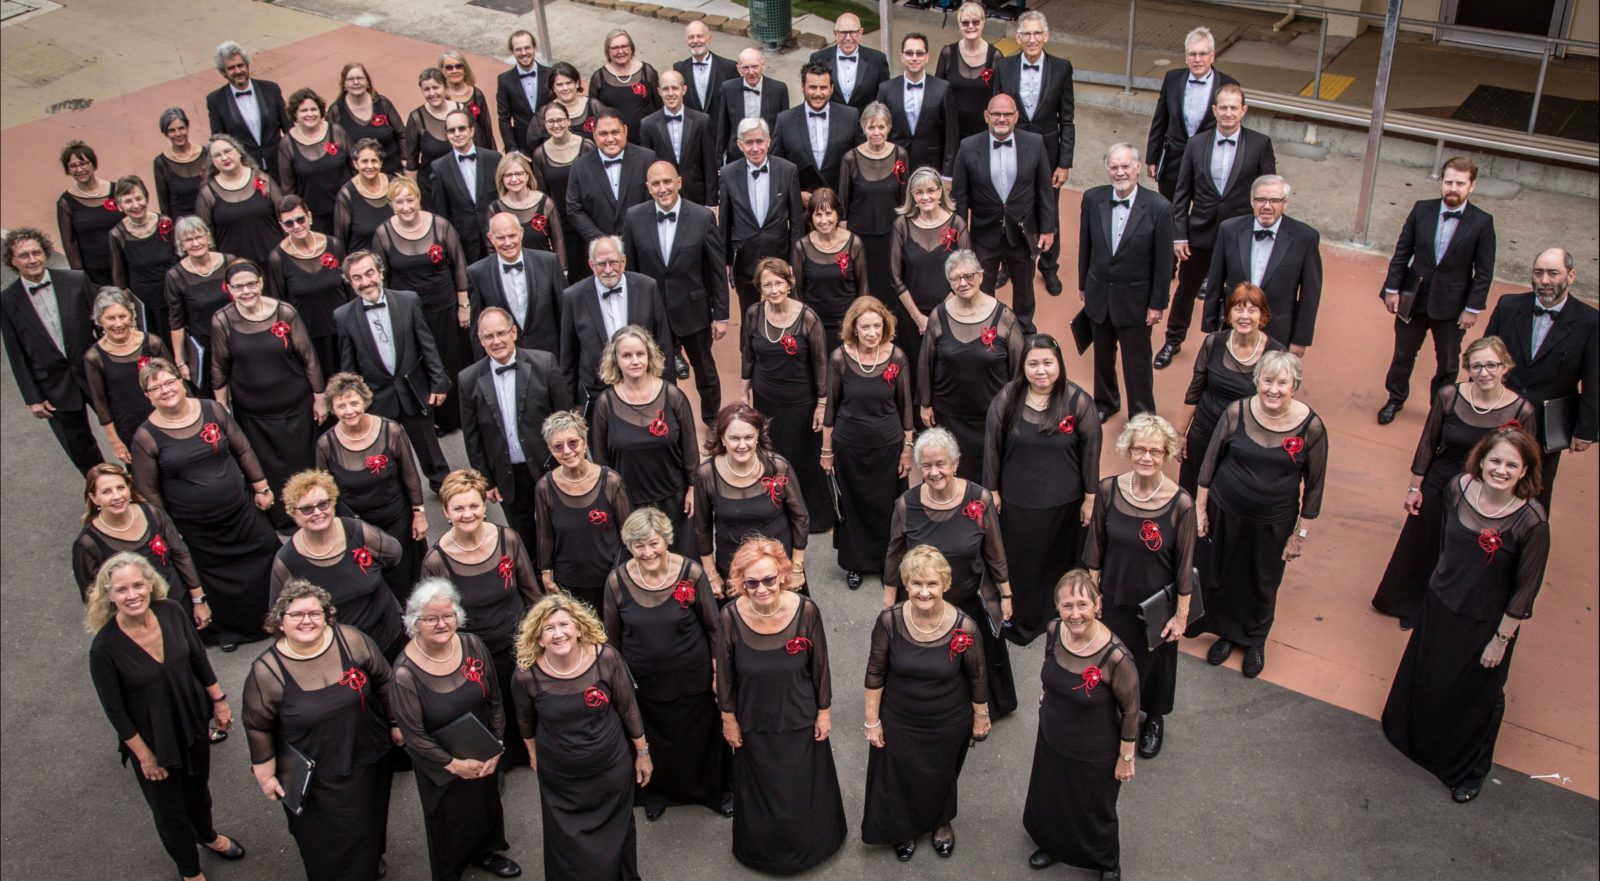 Brisbane Chorale group photo